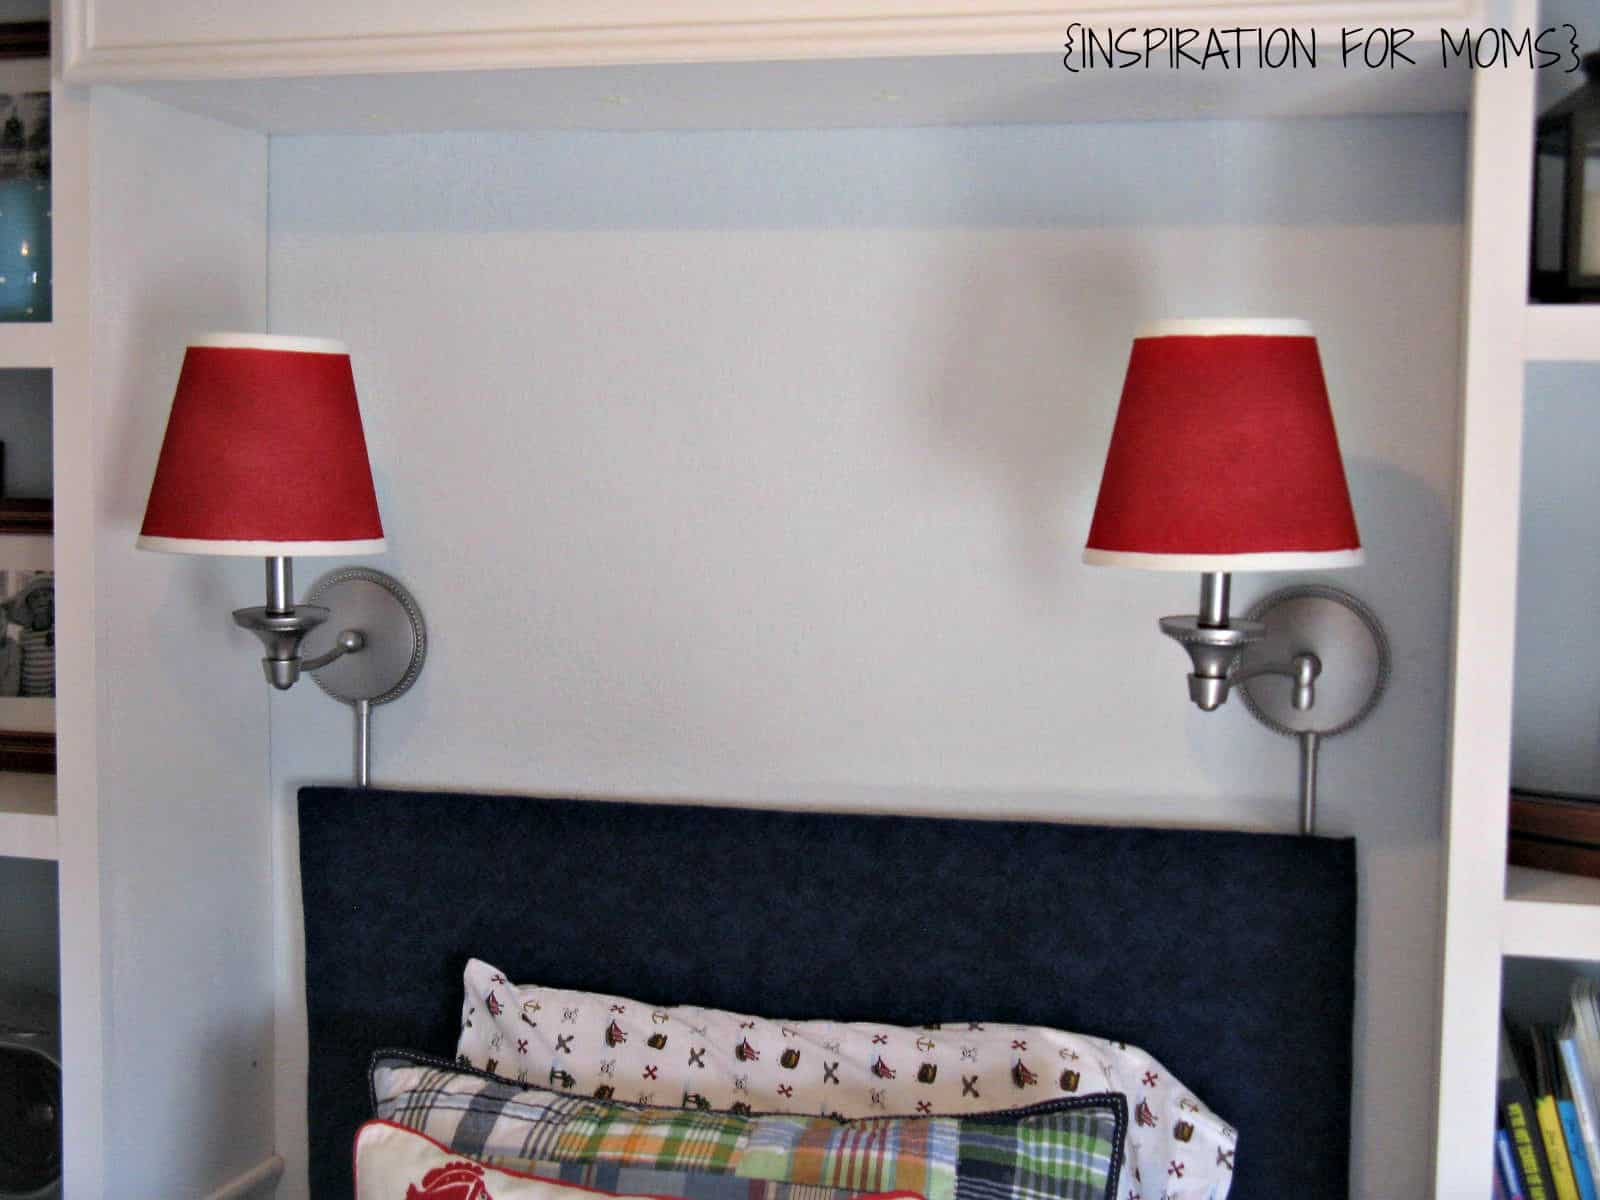 How to paint lamp shades inspiration for moms aloadofball Gallery